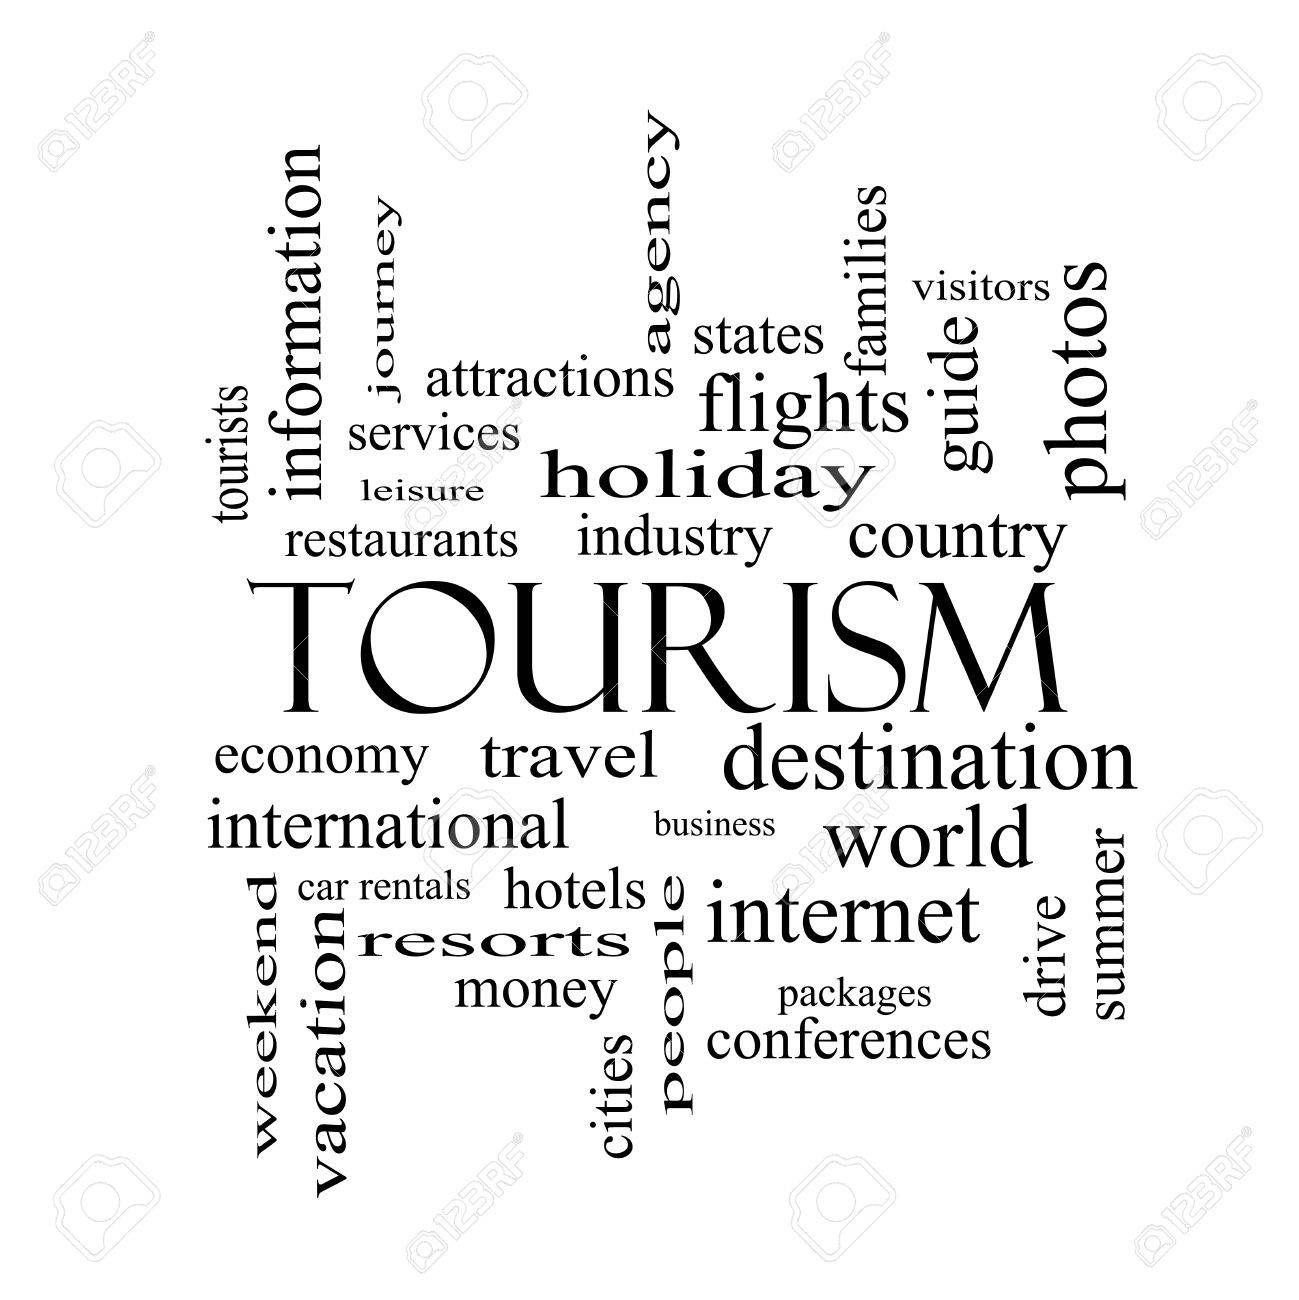 Tourism Word Cloud Concept In Black And White With Great Terms